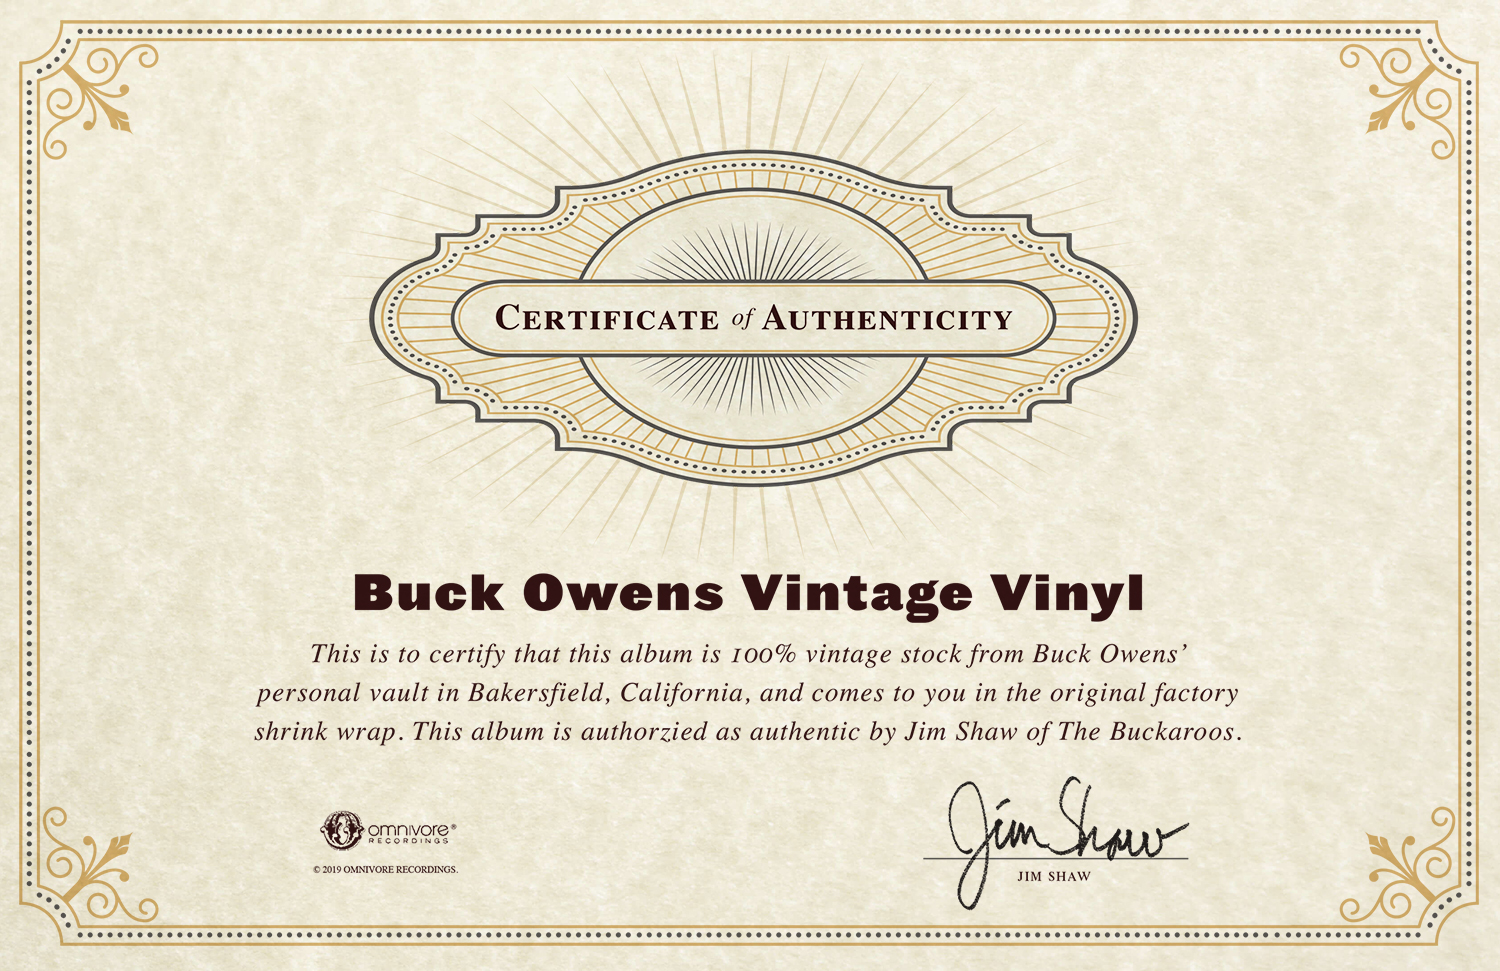 Buck Owens - Certificate of Authenticity